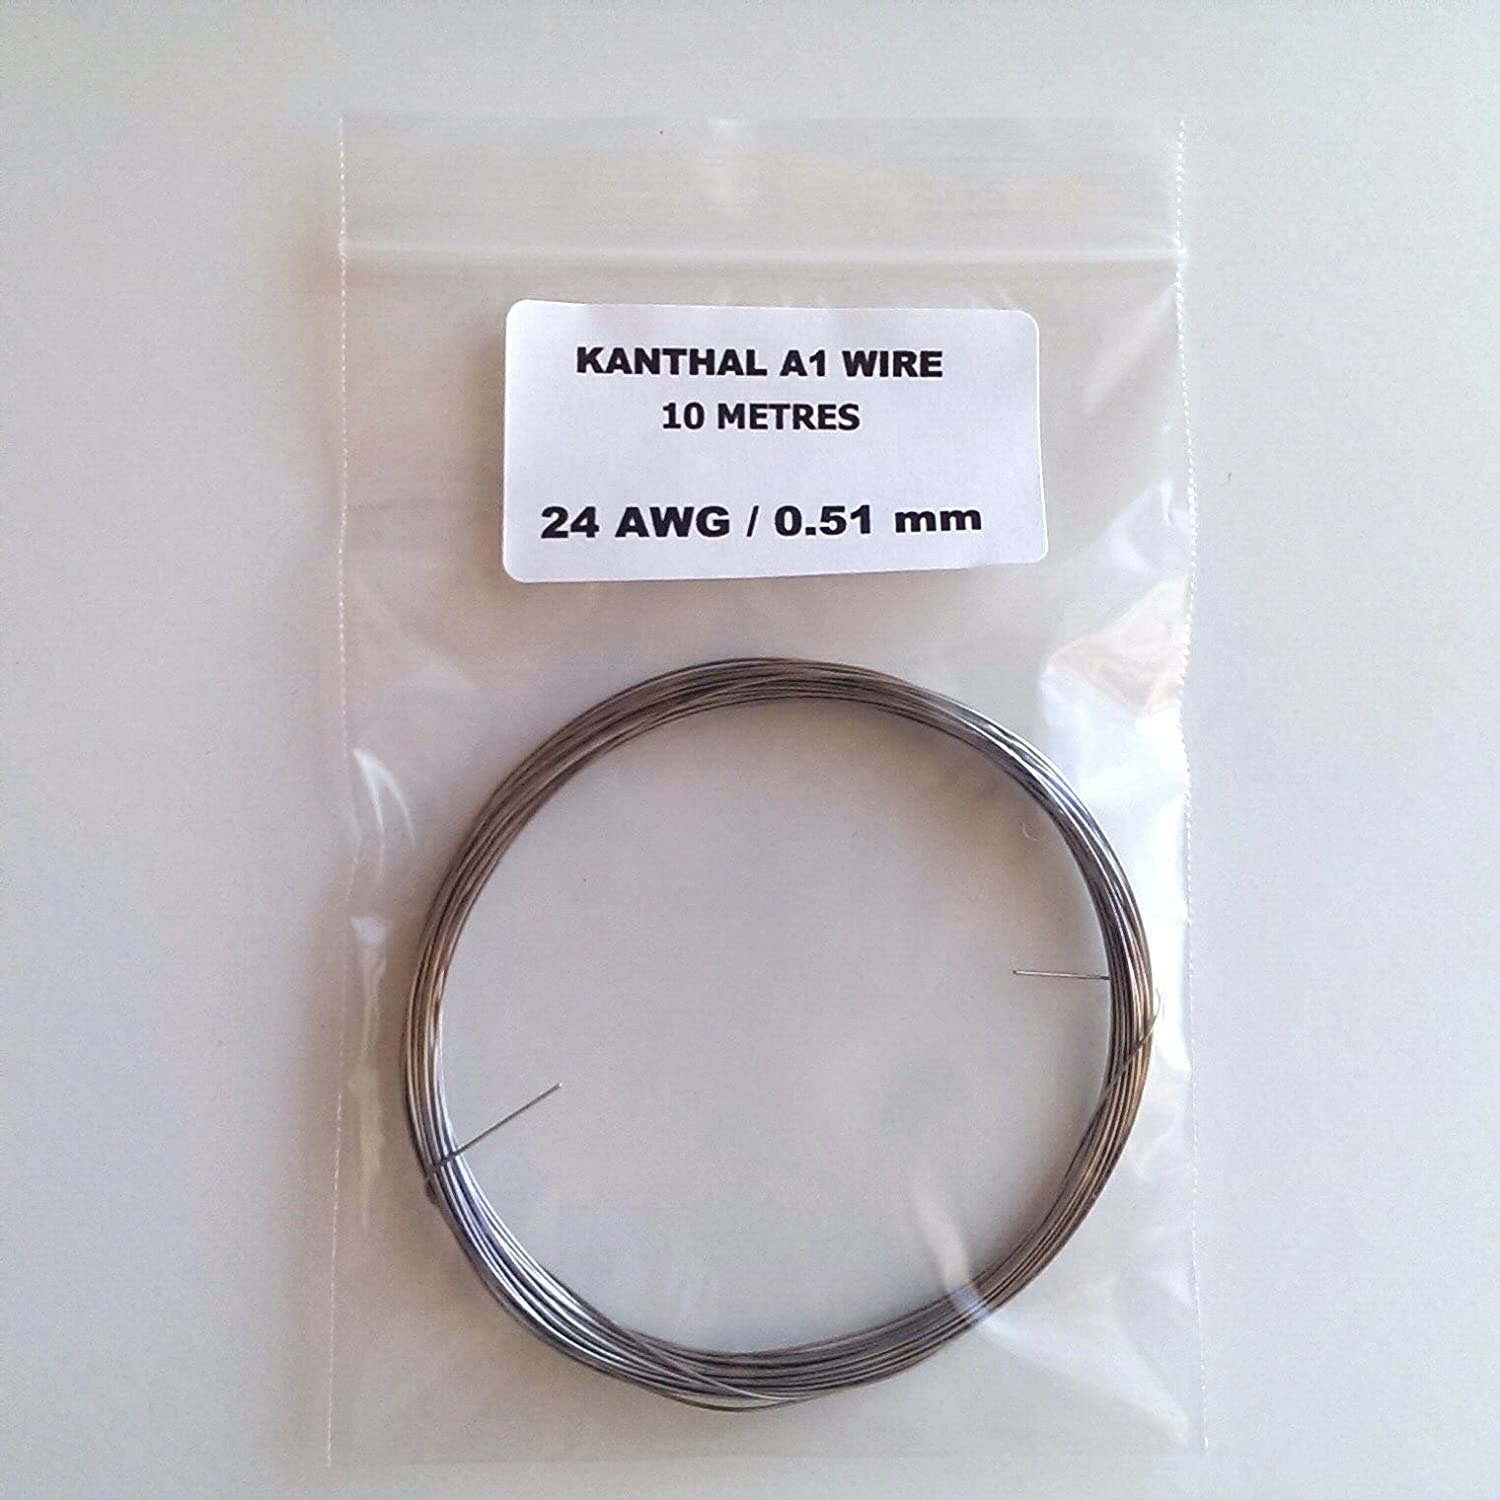 Quality Kanthal A1 Resistance Wire - 20, 22, 24, 26, 28, 30 & 32 AWG ...